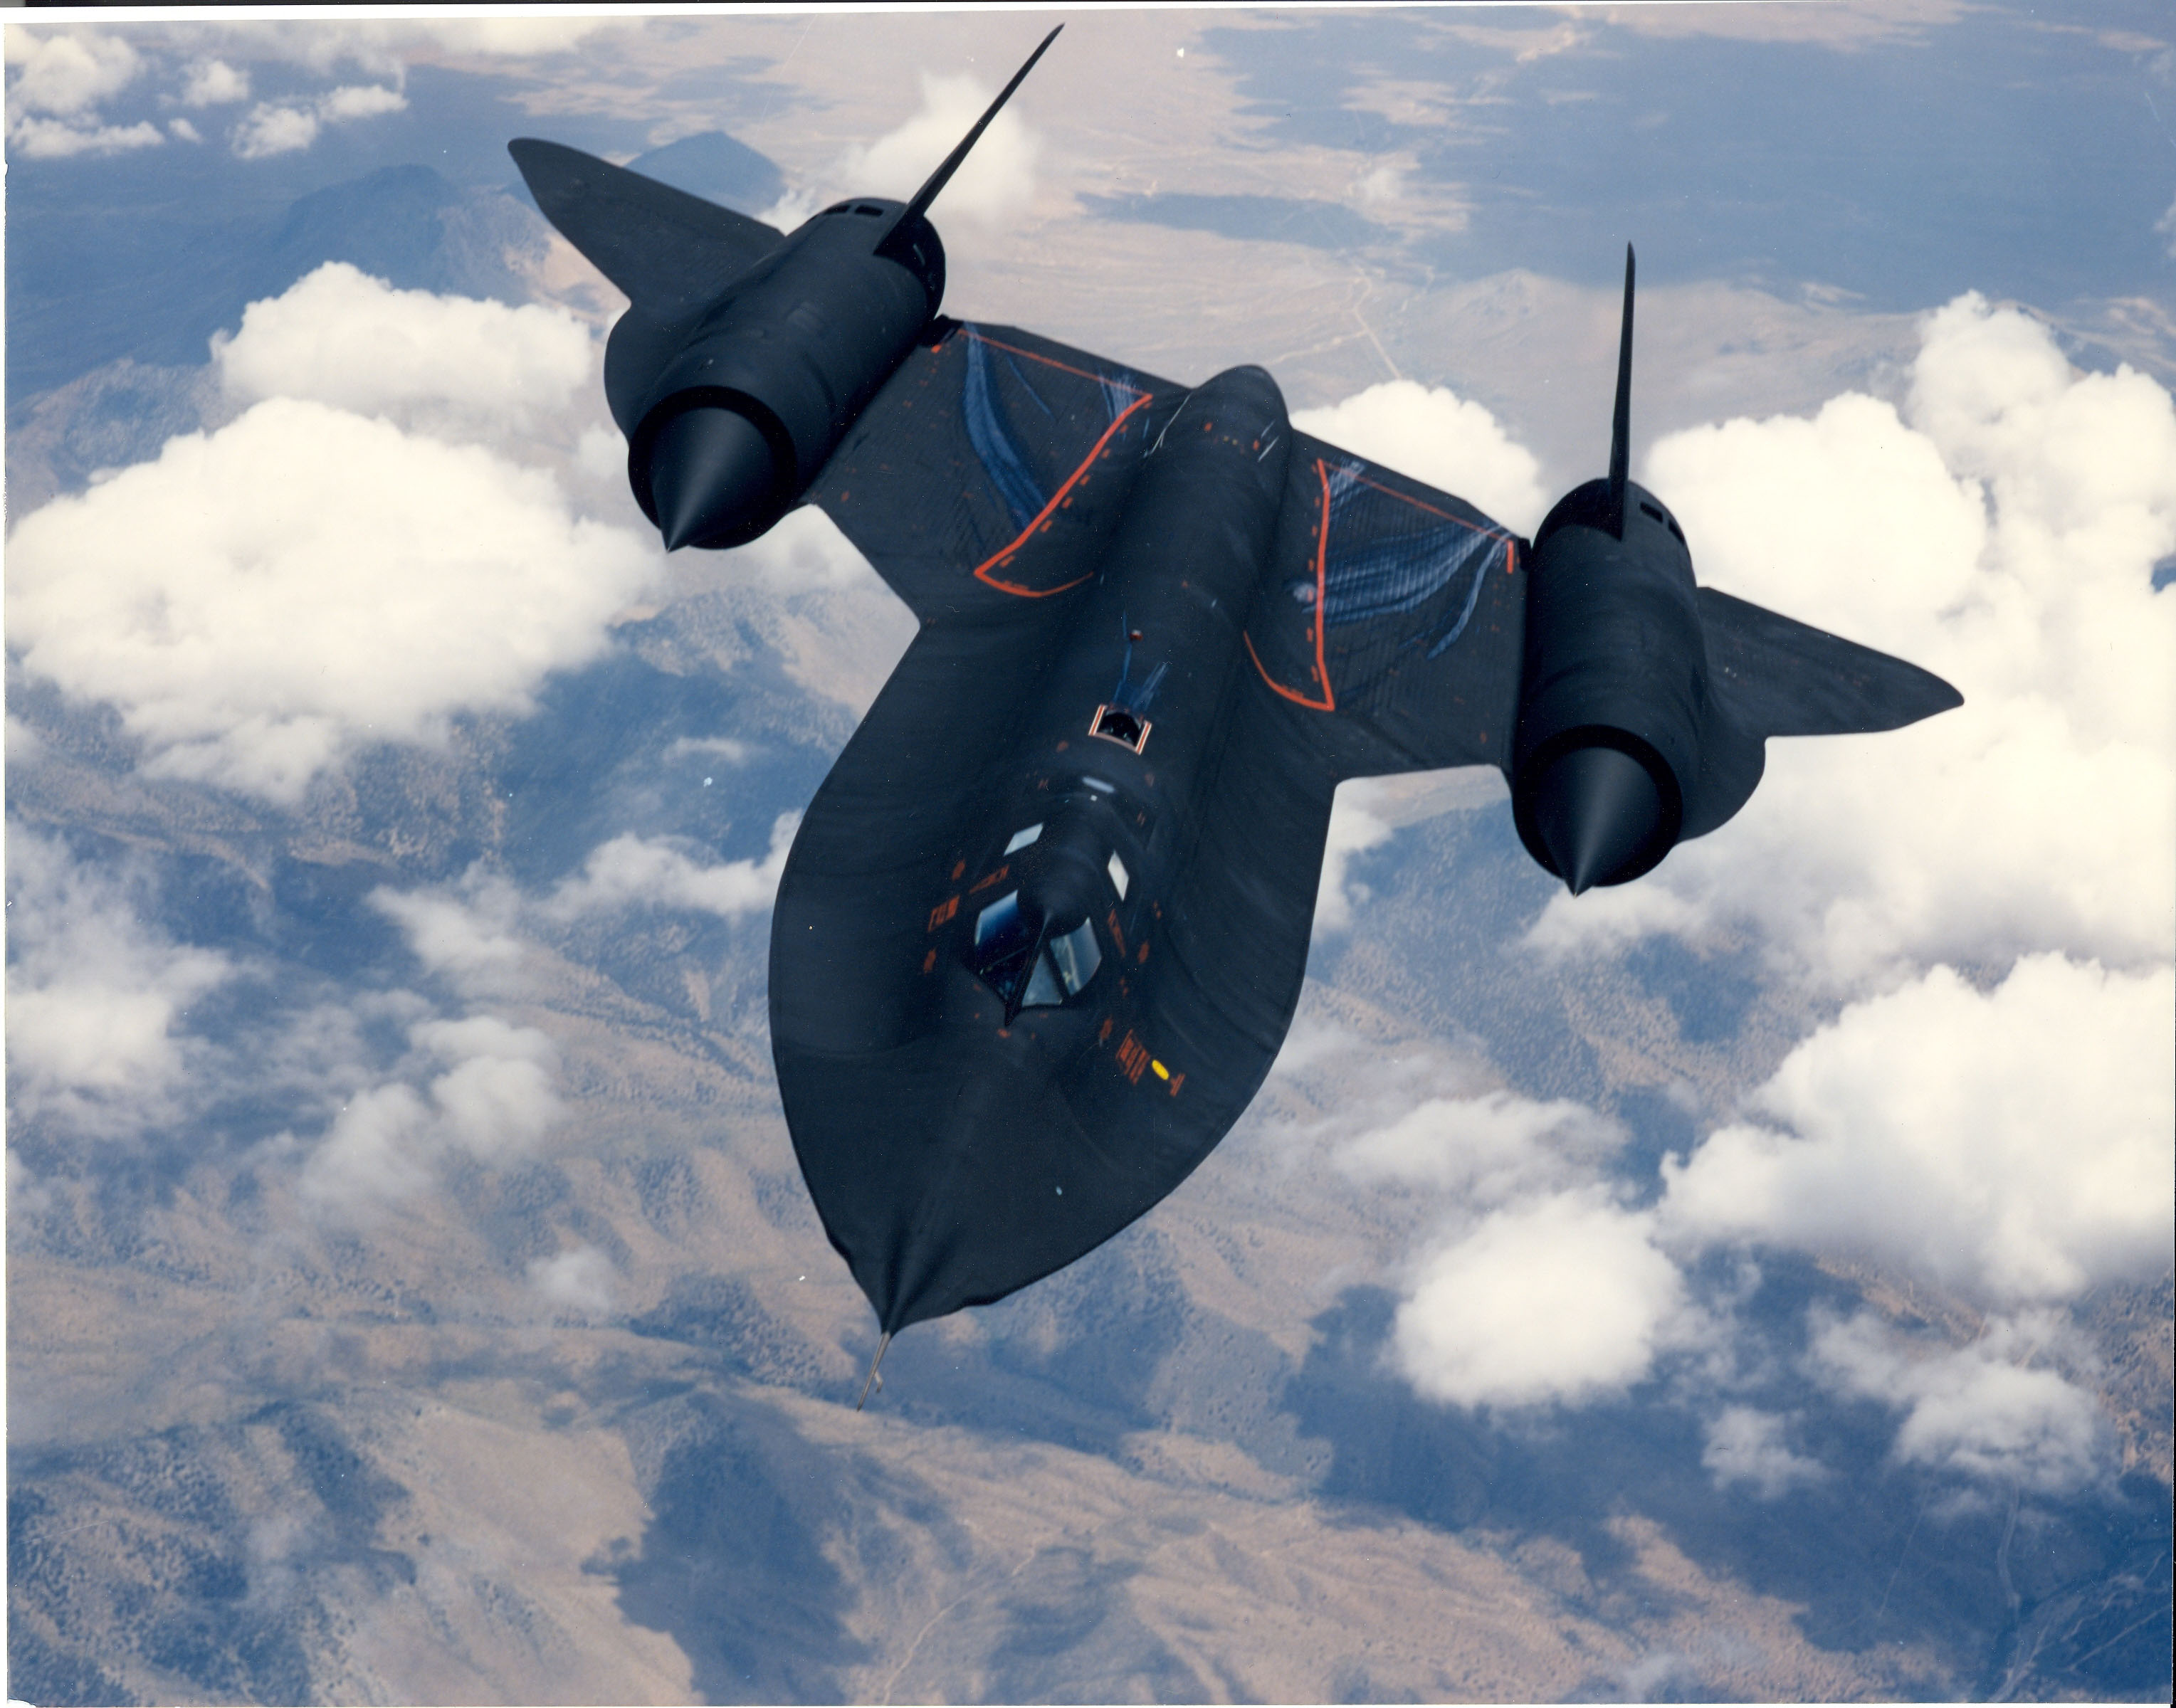 Fastest Plane In The World >> Top 10 Fastest Aircraft In The World